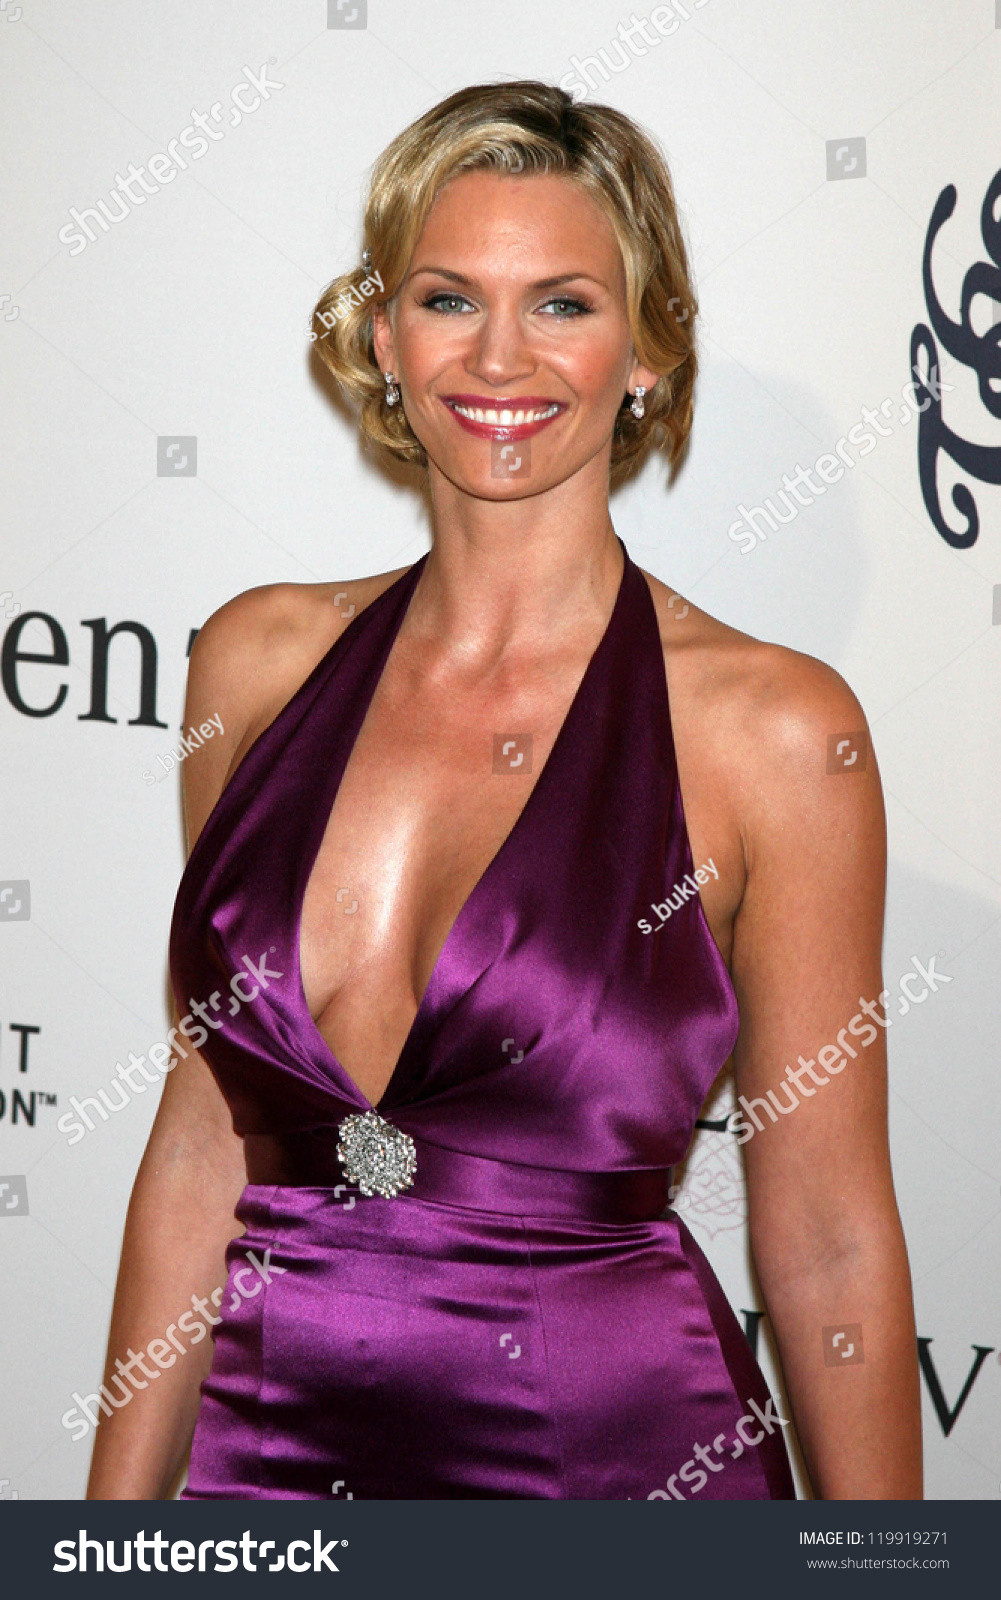 natasha henstridge getty imagesnatasha henstridge 1990, natasha henstridge ins, natasha henstridge photos 2017, natasha henstridge conan o'brien, natasha henstridge movies 2016, natasha henstridge 2005, natasha henstridge inconceivable movie, natasha henstridge getty images, natasha henstridge imdb, natasha henstridge instagram, natasha henstridge net worth, natasha henstridge movies, natasha henstridge facebook